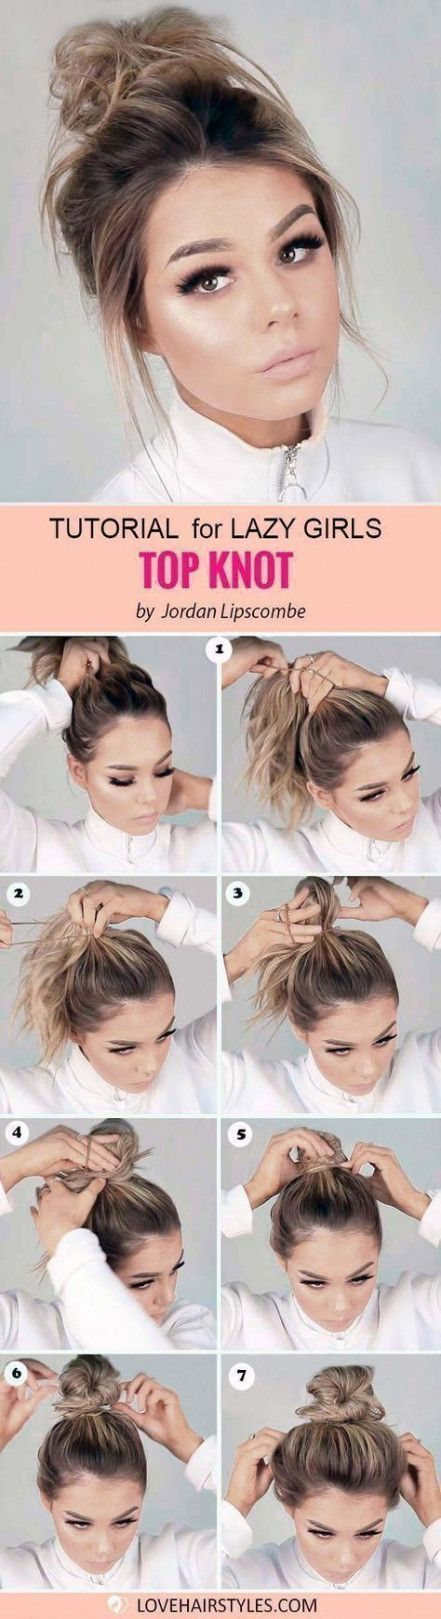 Hairstyles Long Lazy Girls Messy Buns 69 Ideas - # Hairstyles #Ideas # Messy - #New, ...